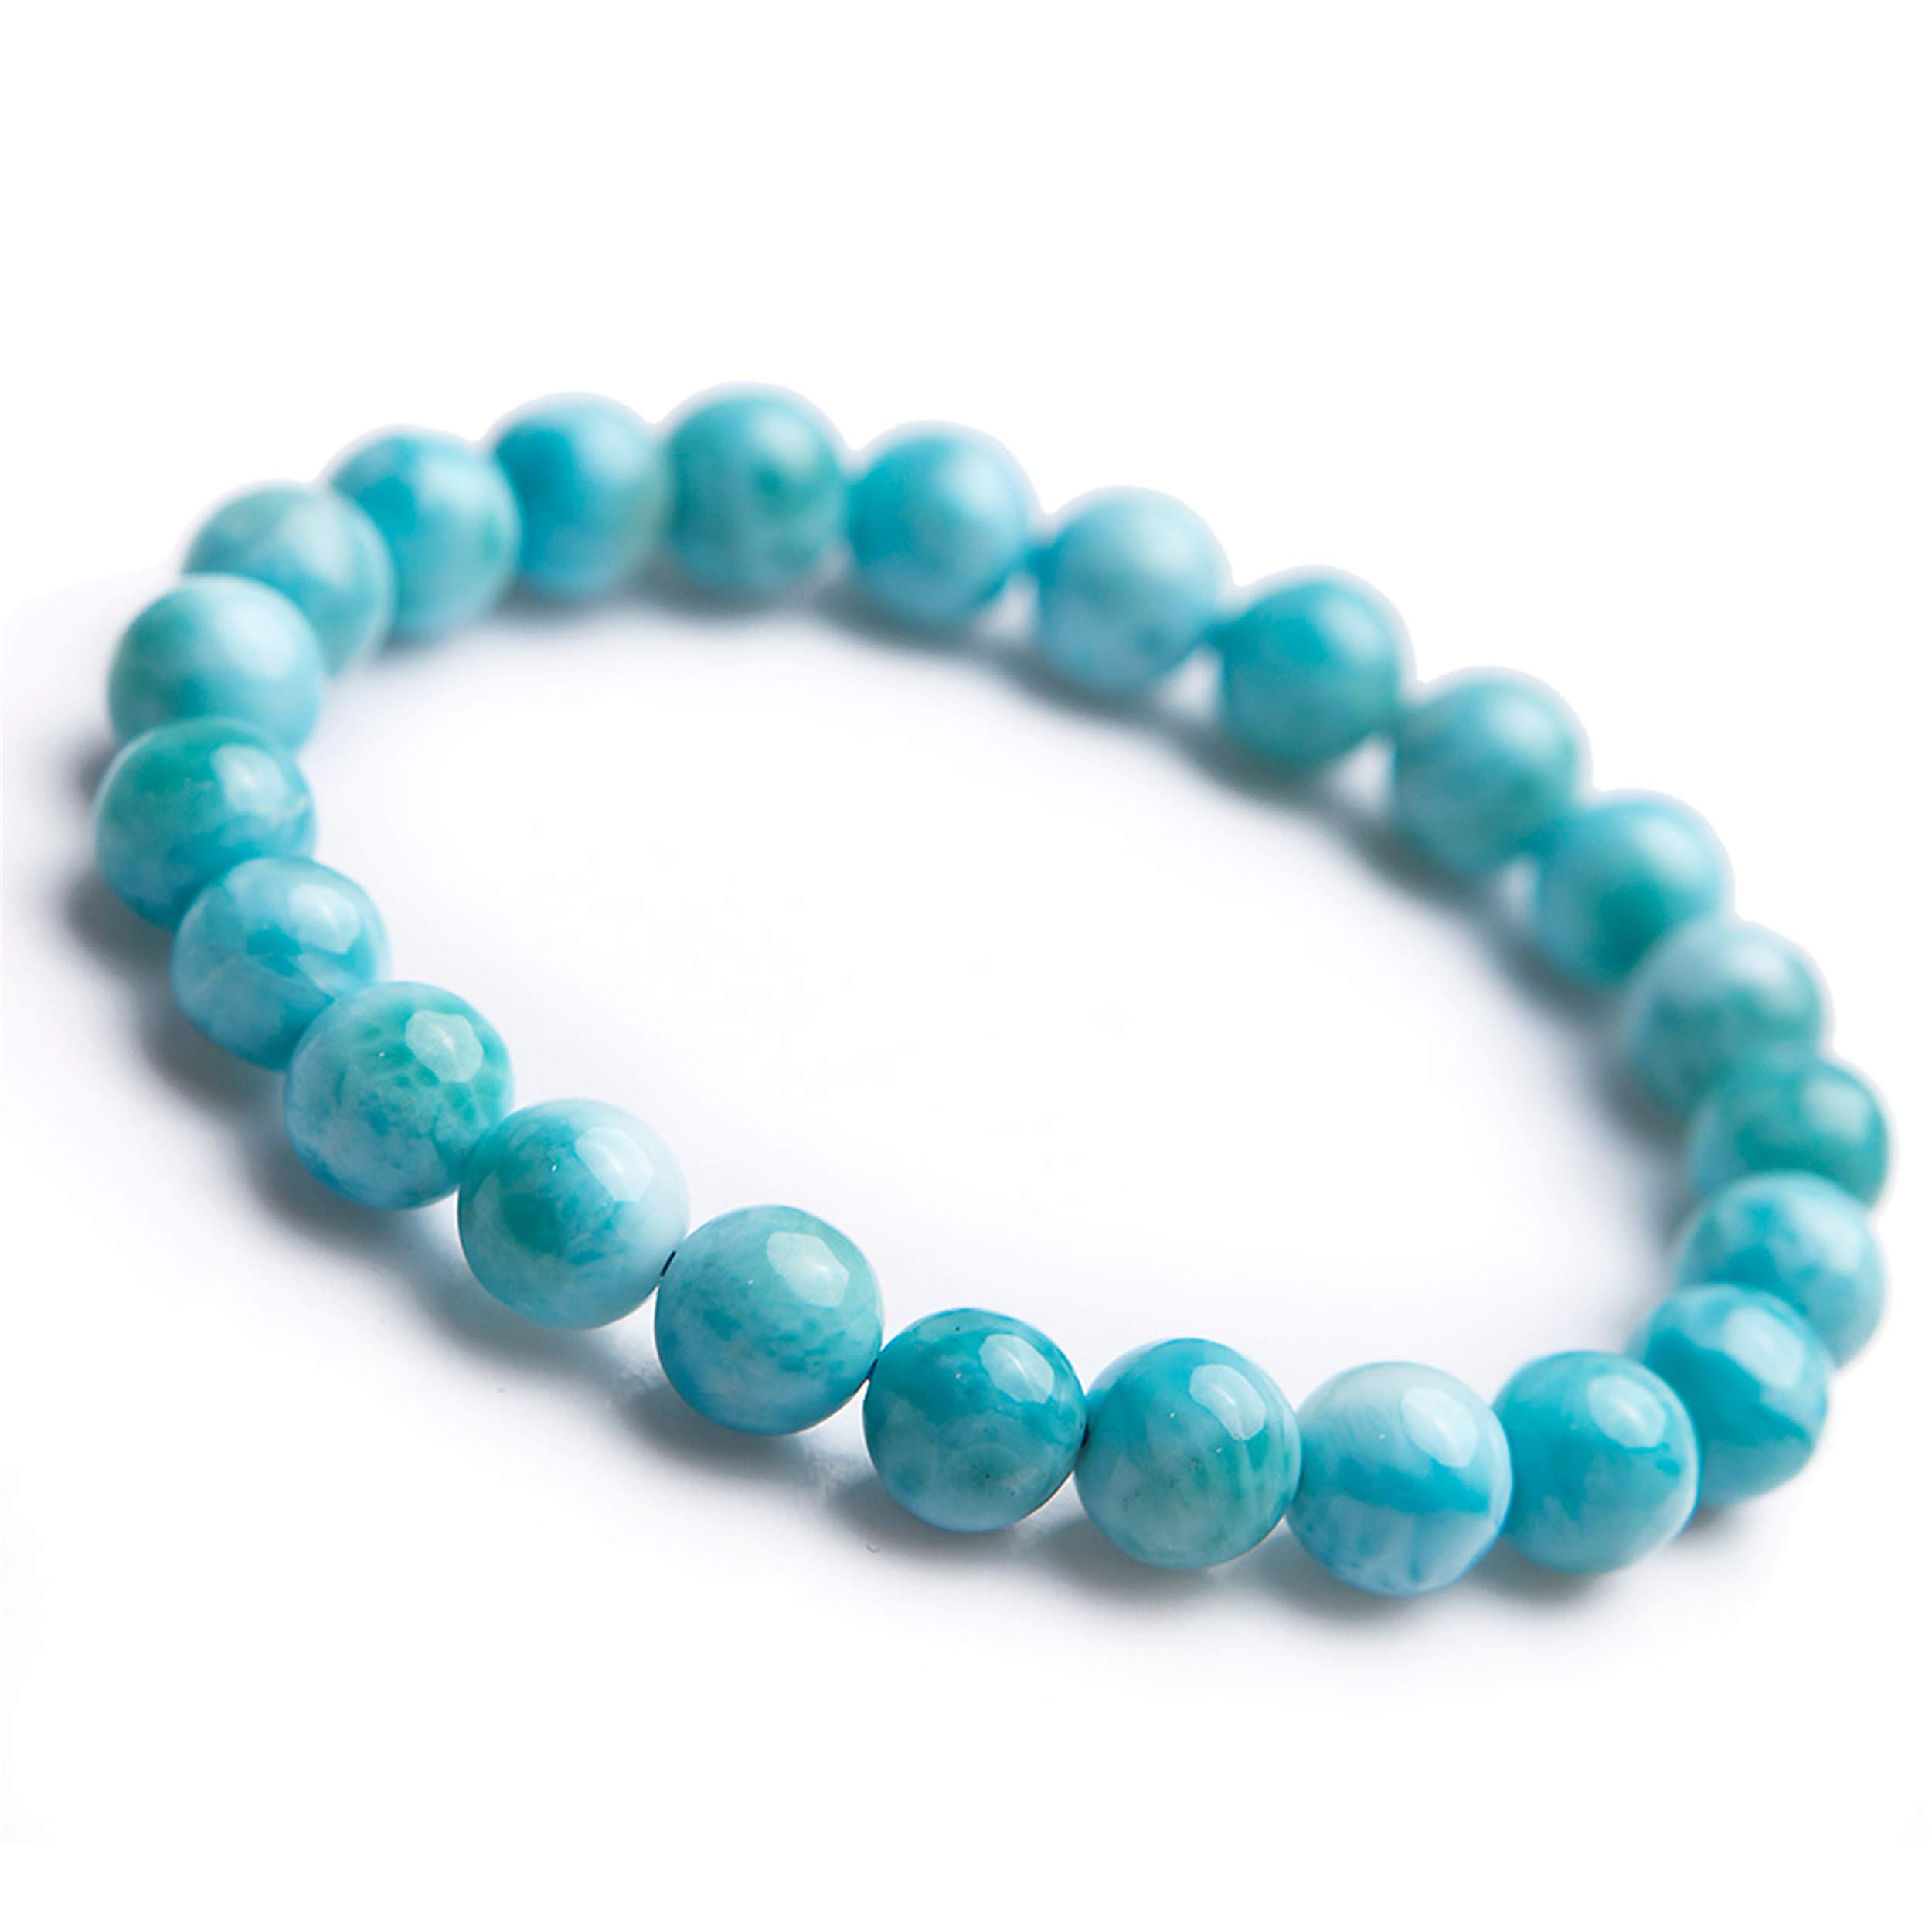 LiZiFang 8mm Genuine Natural Blue Larimar Gemstone Crystal Round Bead Bracelet